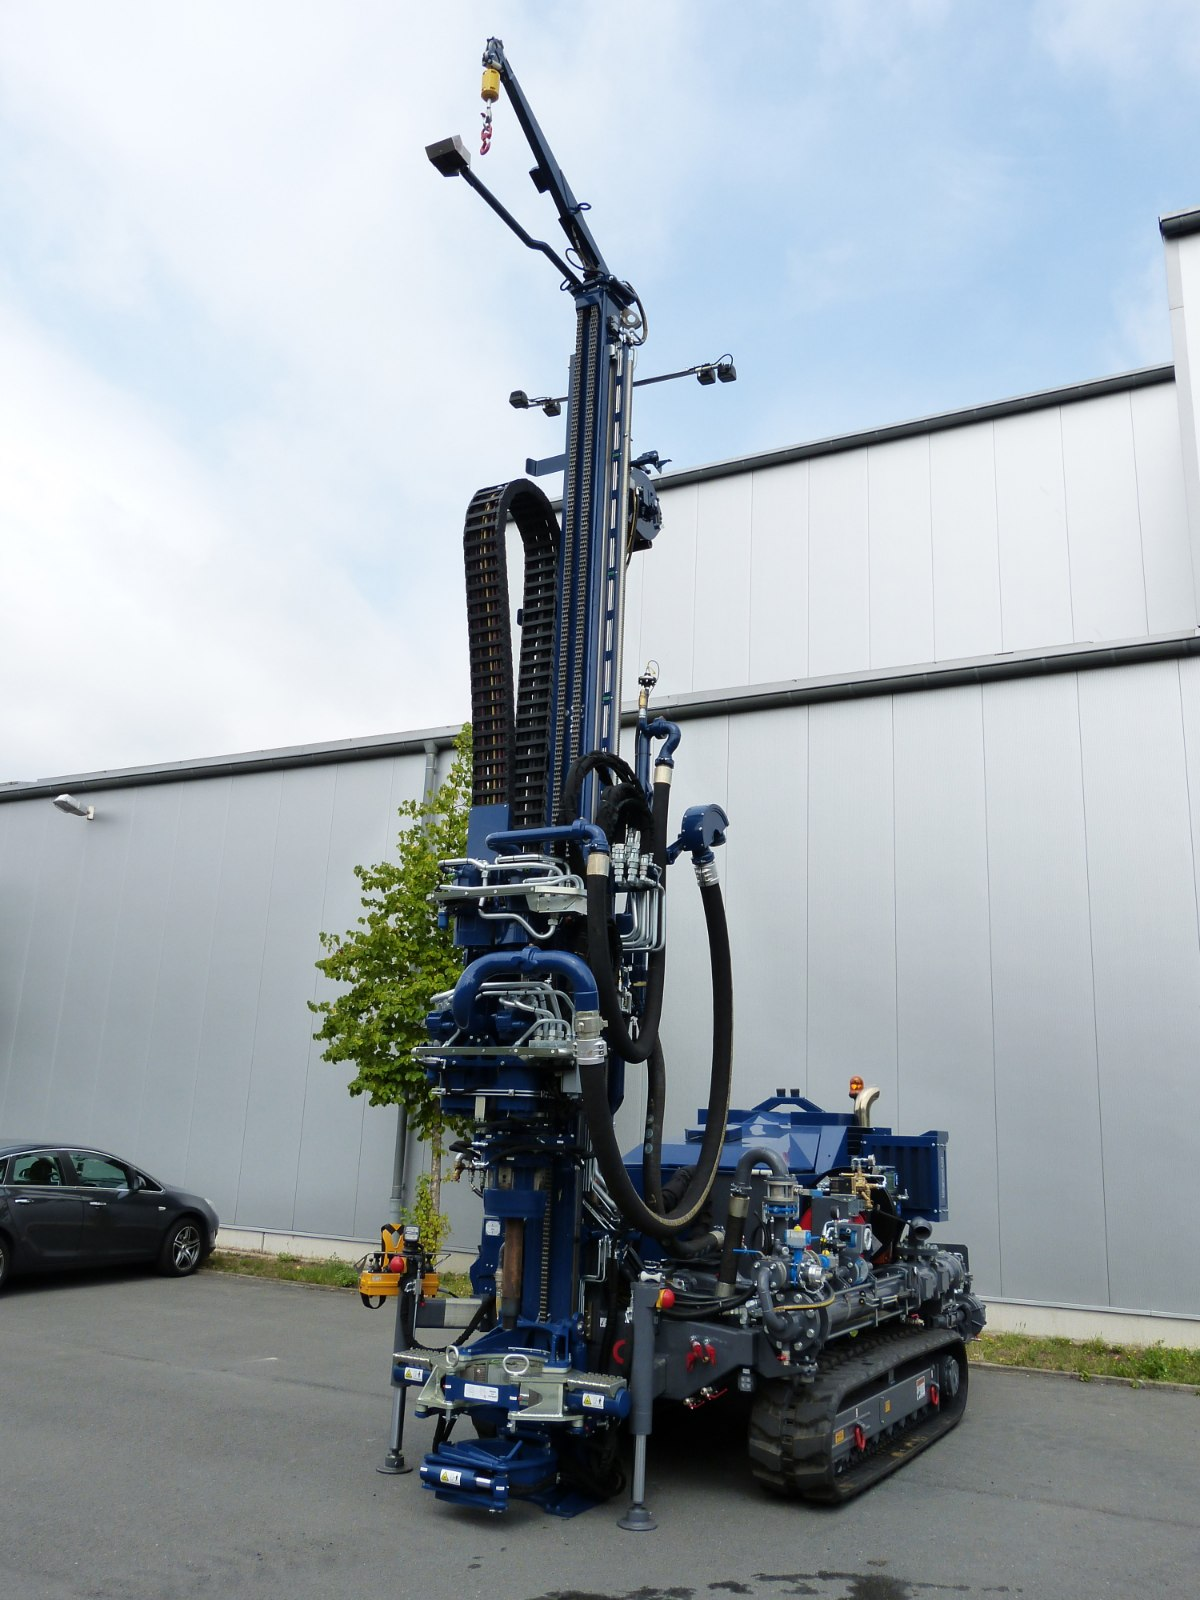 Geotec_Bohrtechnik_Drilling_Doppelkopfbohrgeraet_Erdwaermebohrmaschine_Double-head-drilling-rig_Geothermal-drilling-machine_Rotomax_XL_GTi_01-P1160119